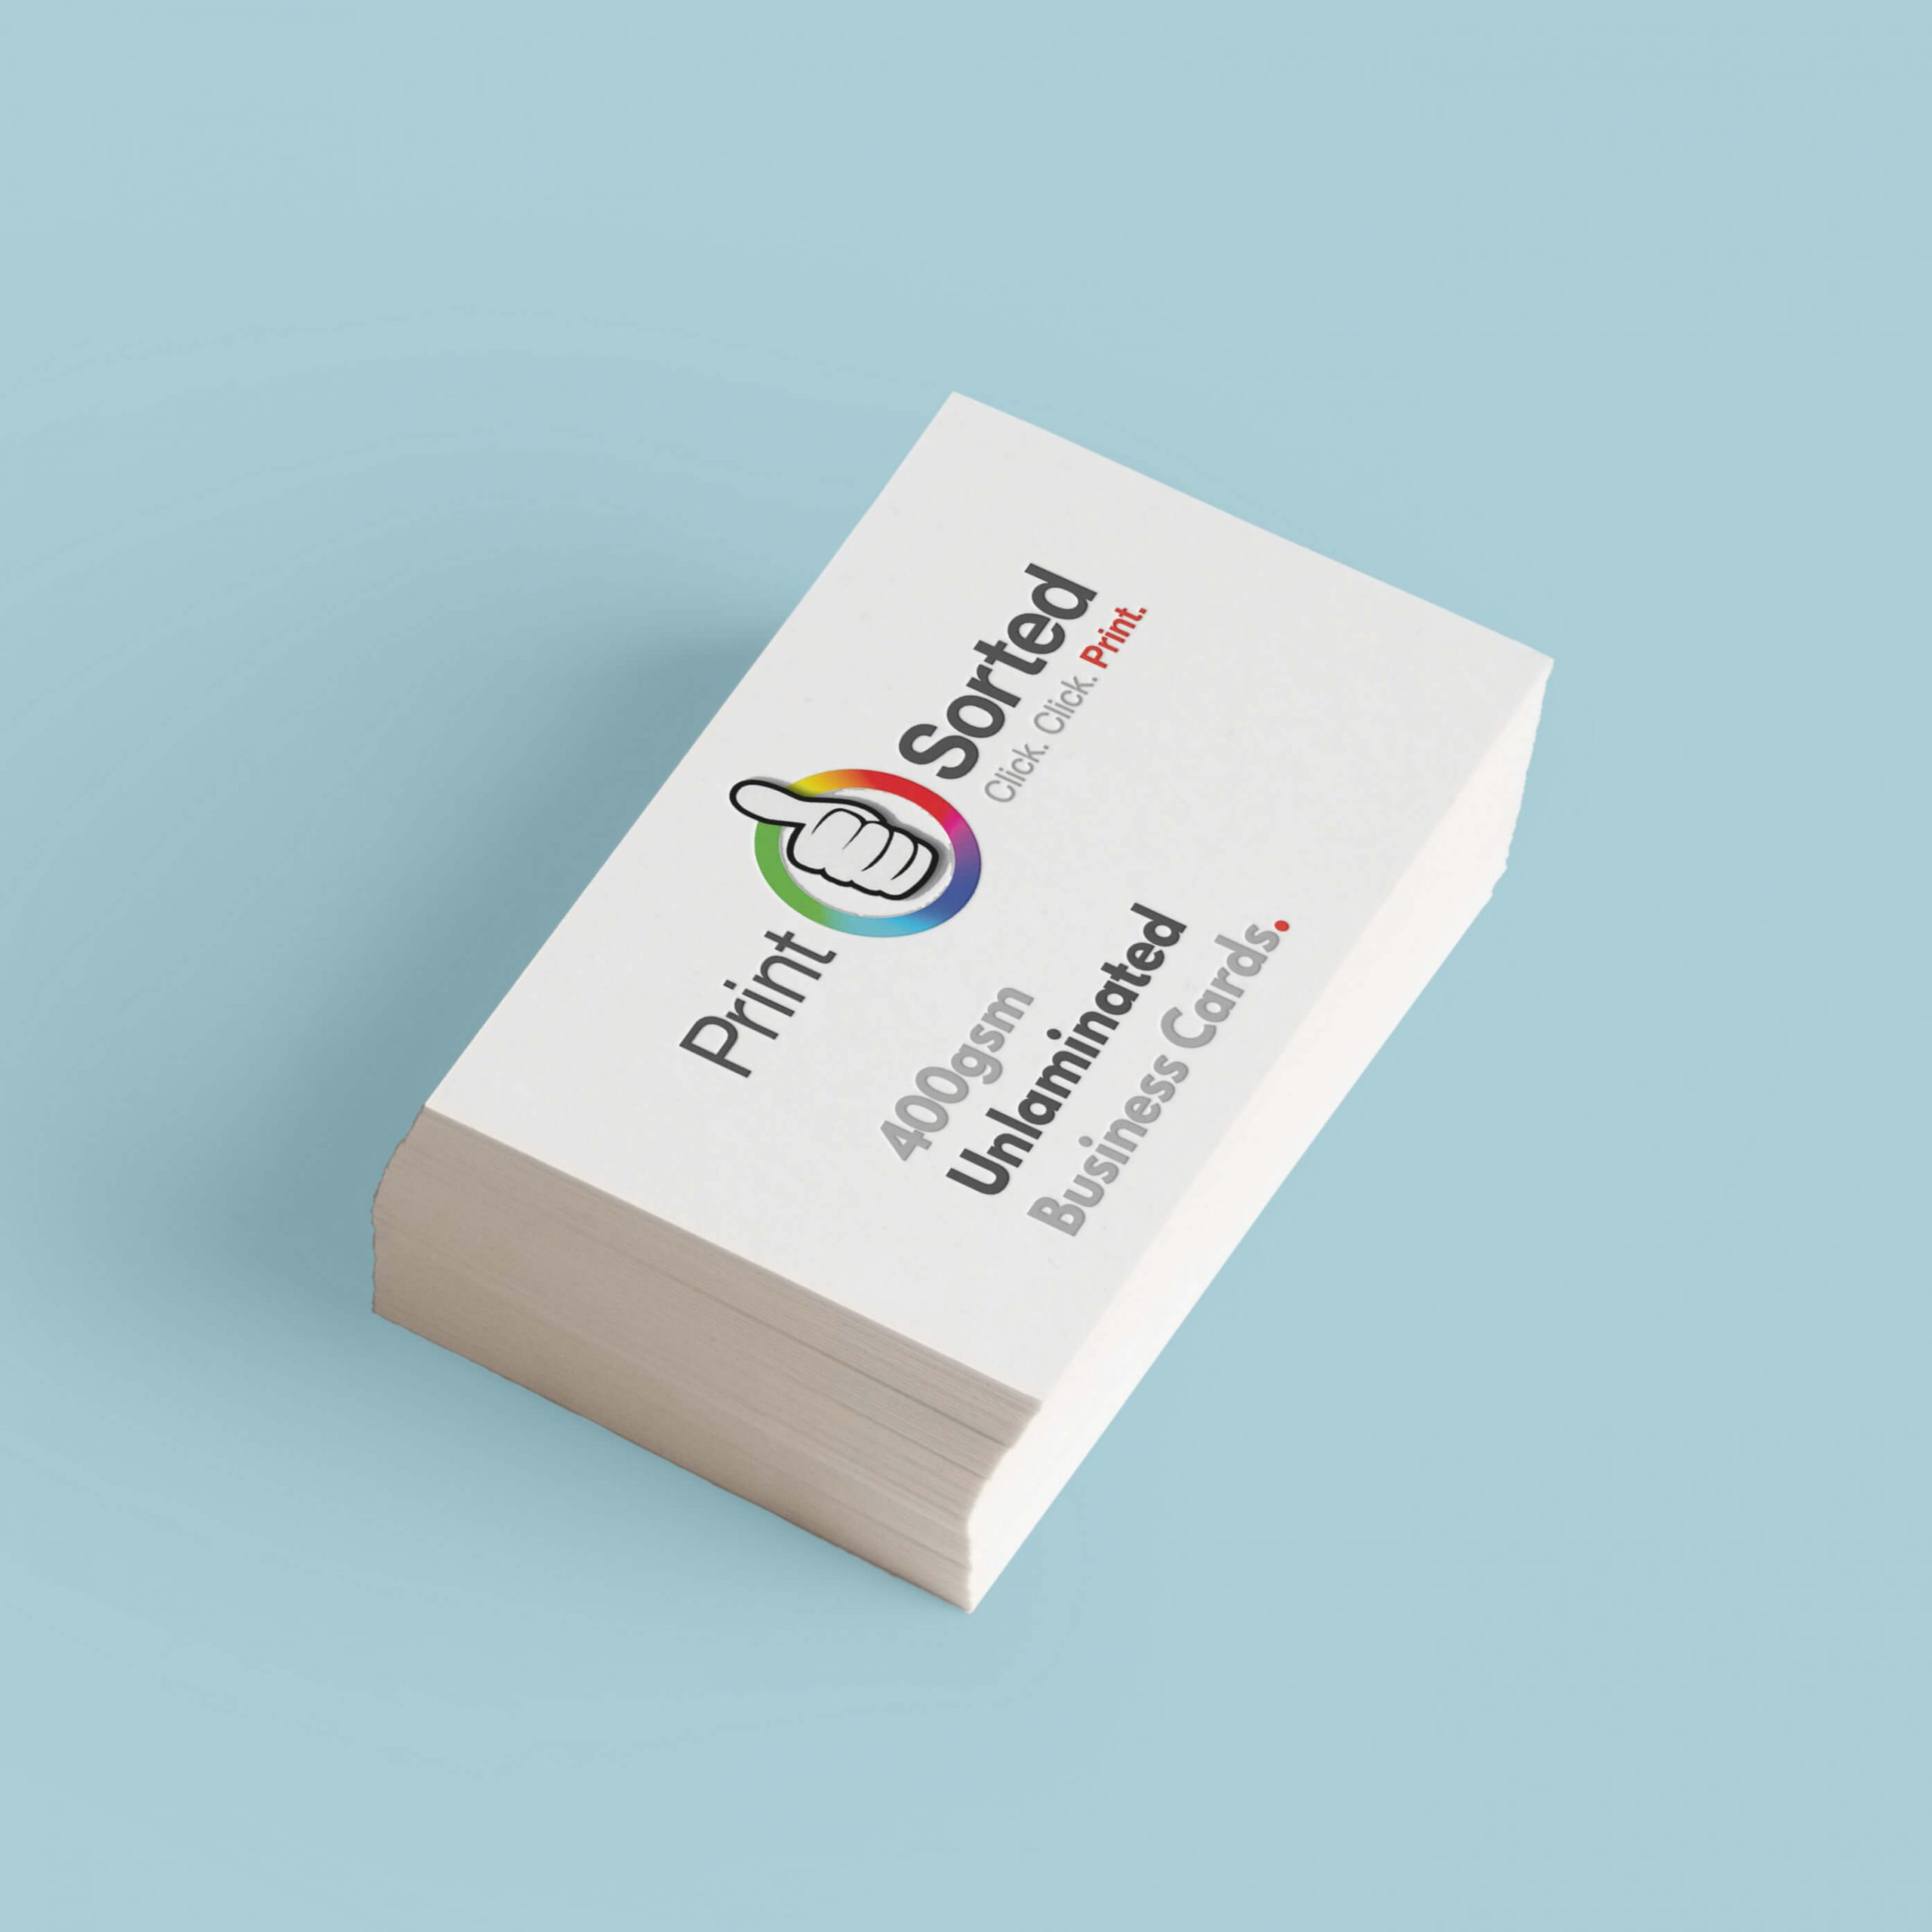 400gsm Unlaminated Business Cards by printsorted